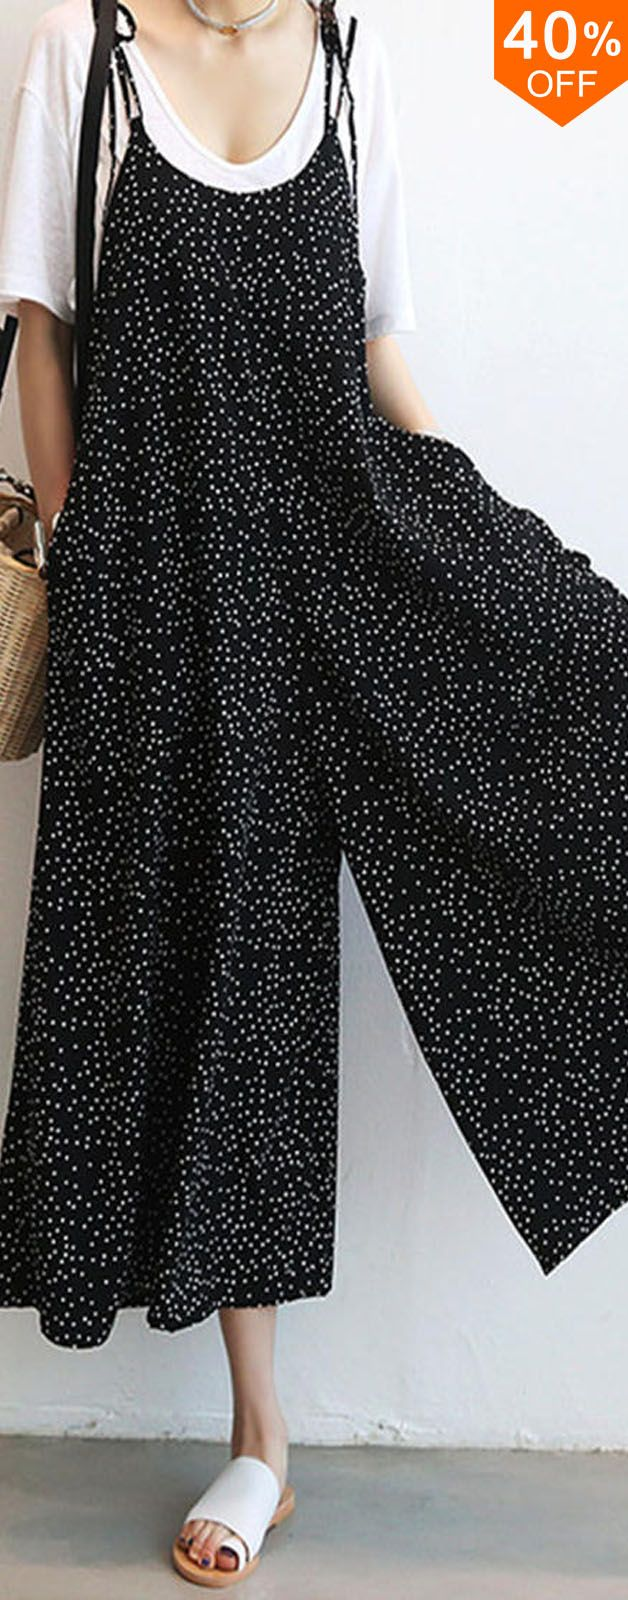 O-NEWE Women Loose Dot Spaghetti Strap Jumpsuits. #women #leggings #fashion